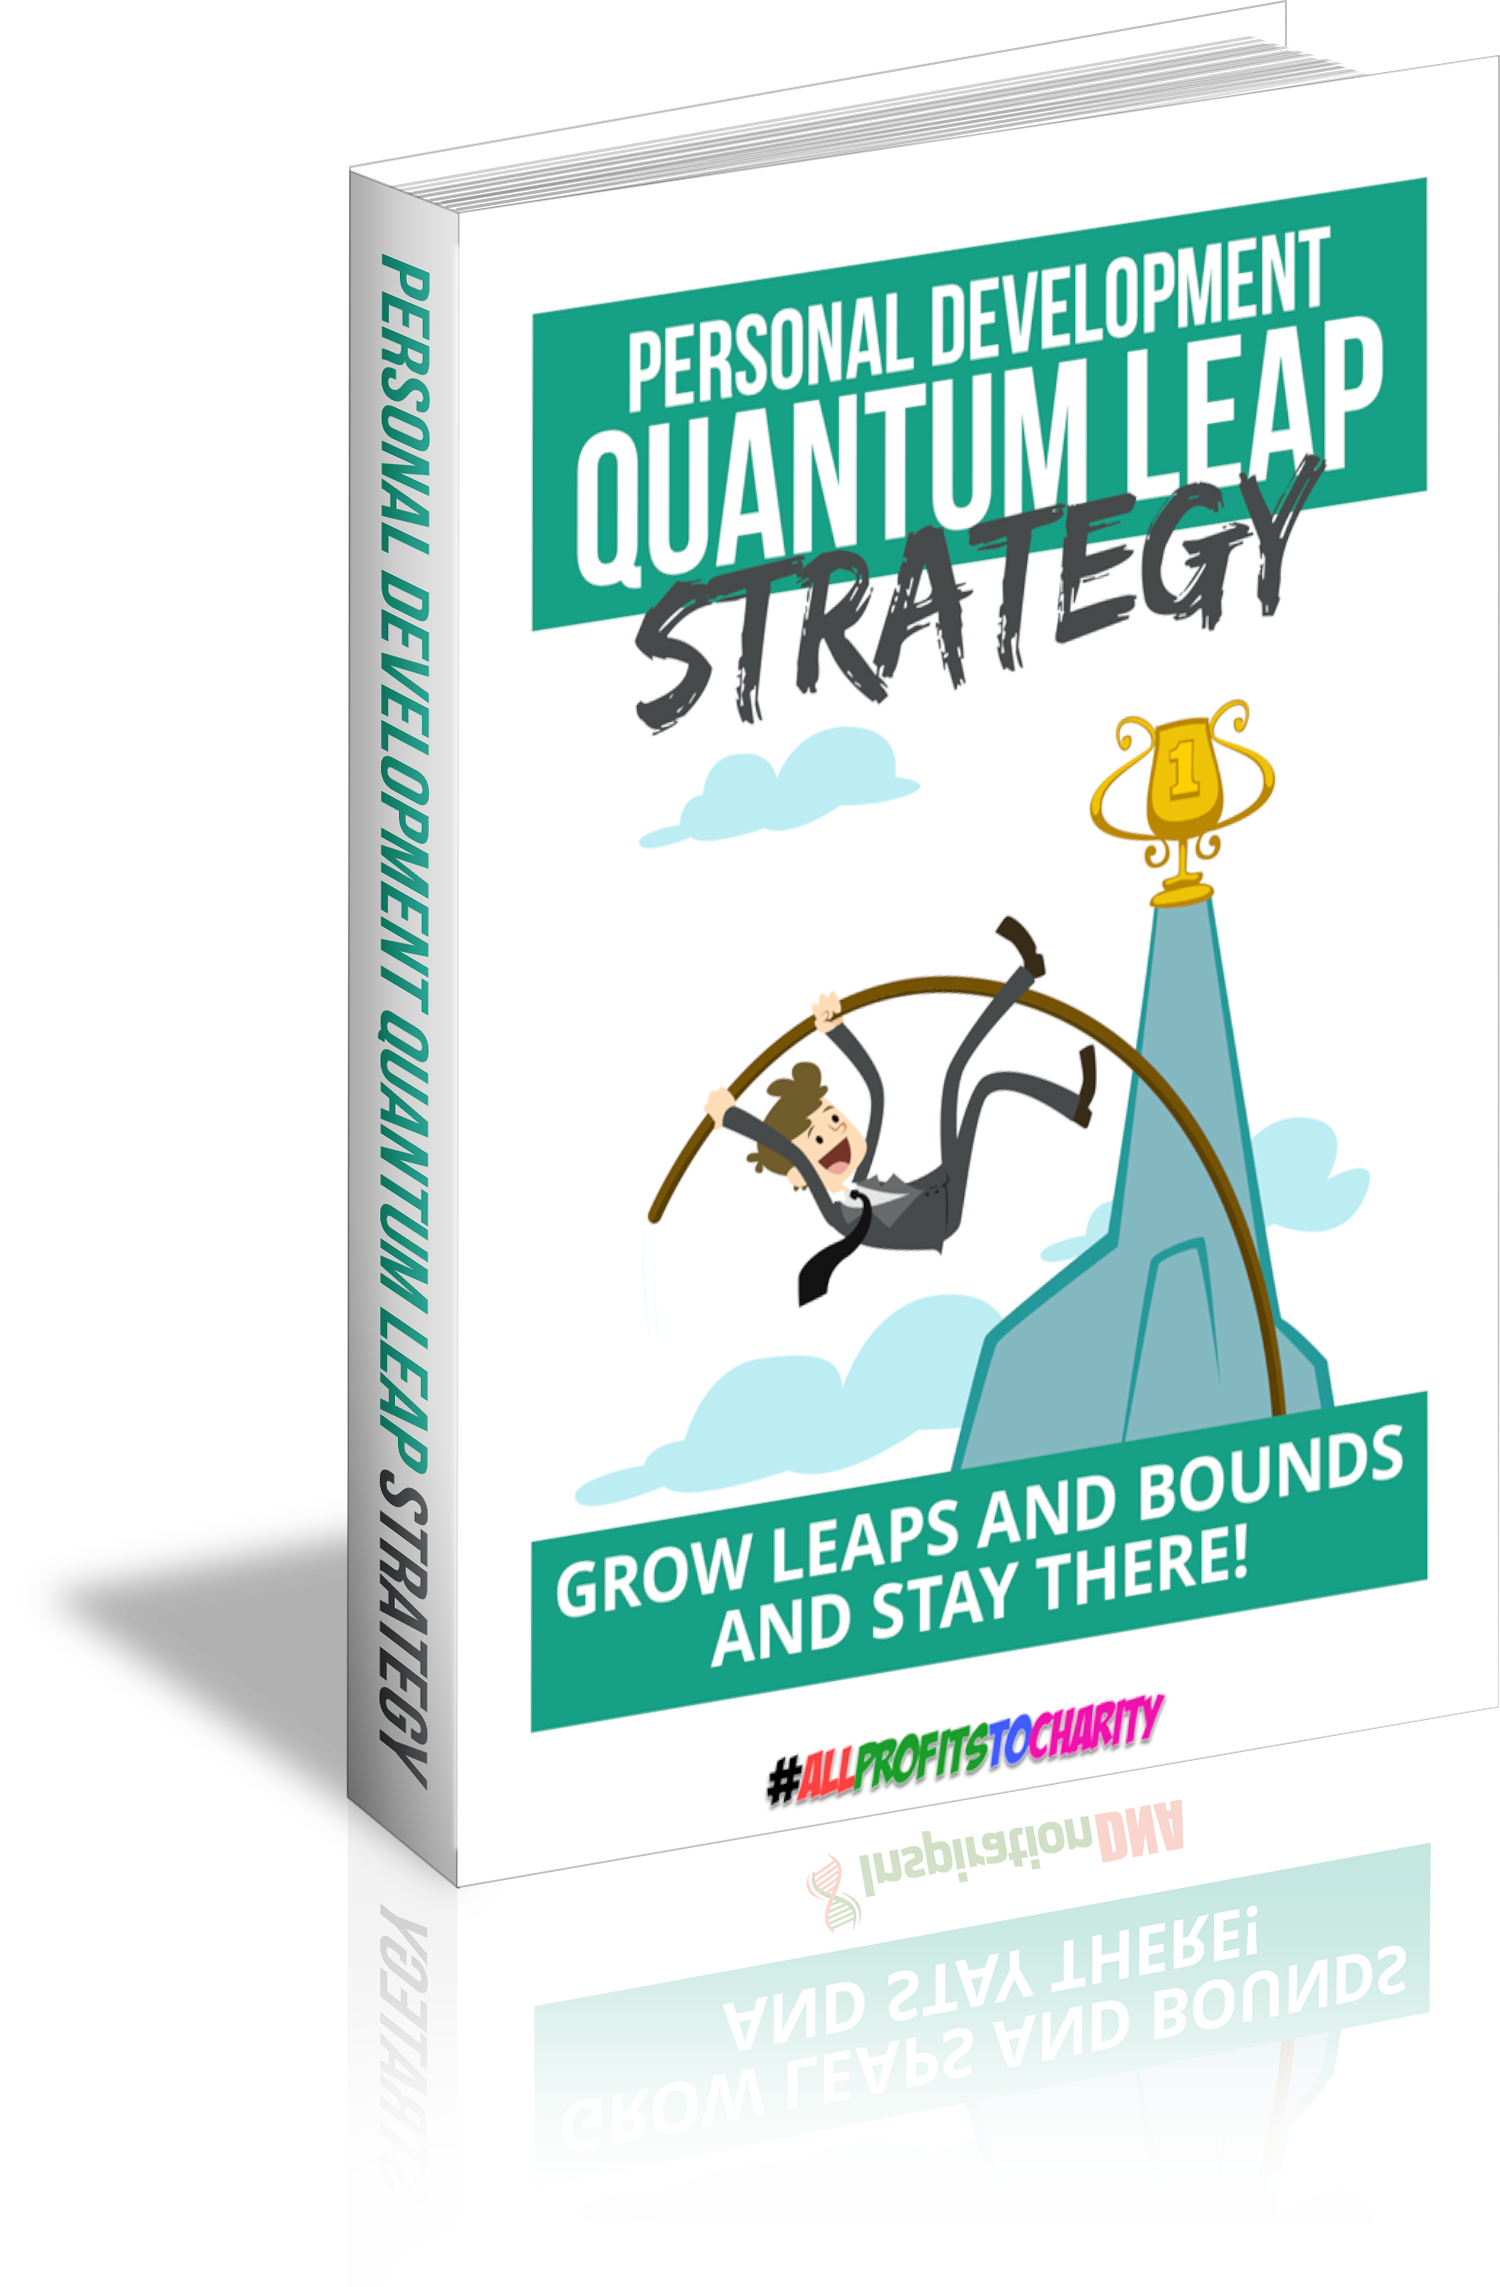 Personal Development Quantum Leap Strategy cover